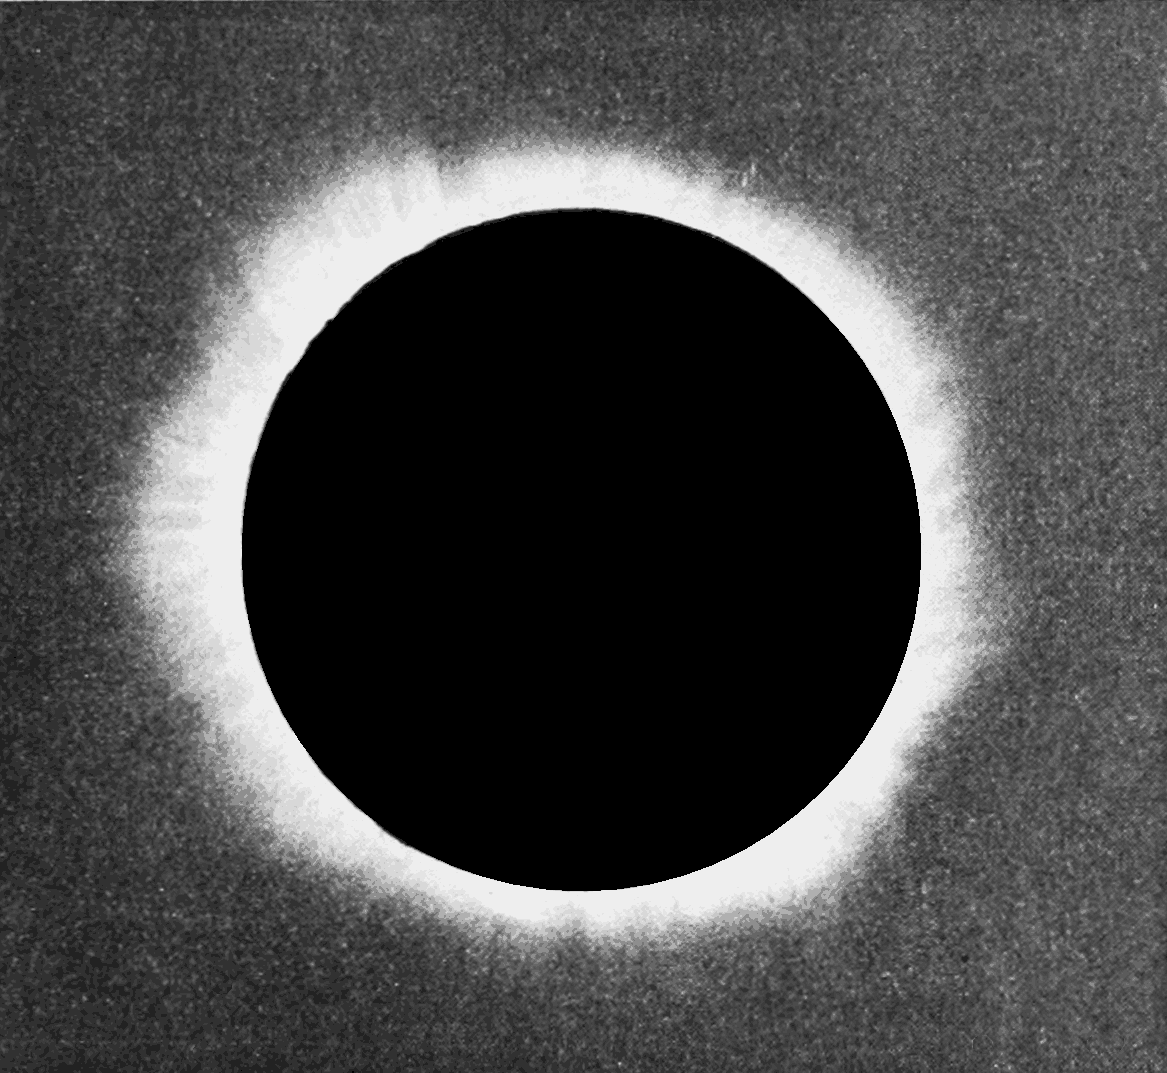 File:PSM V60 D257 Solar corona of 1893 eclipse.png.